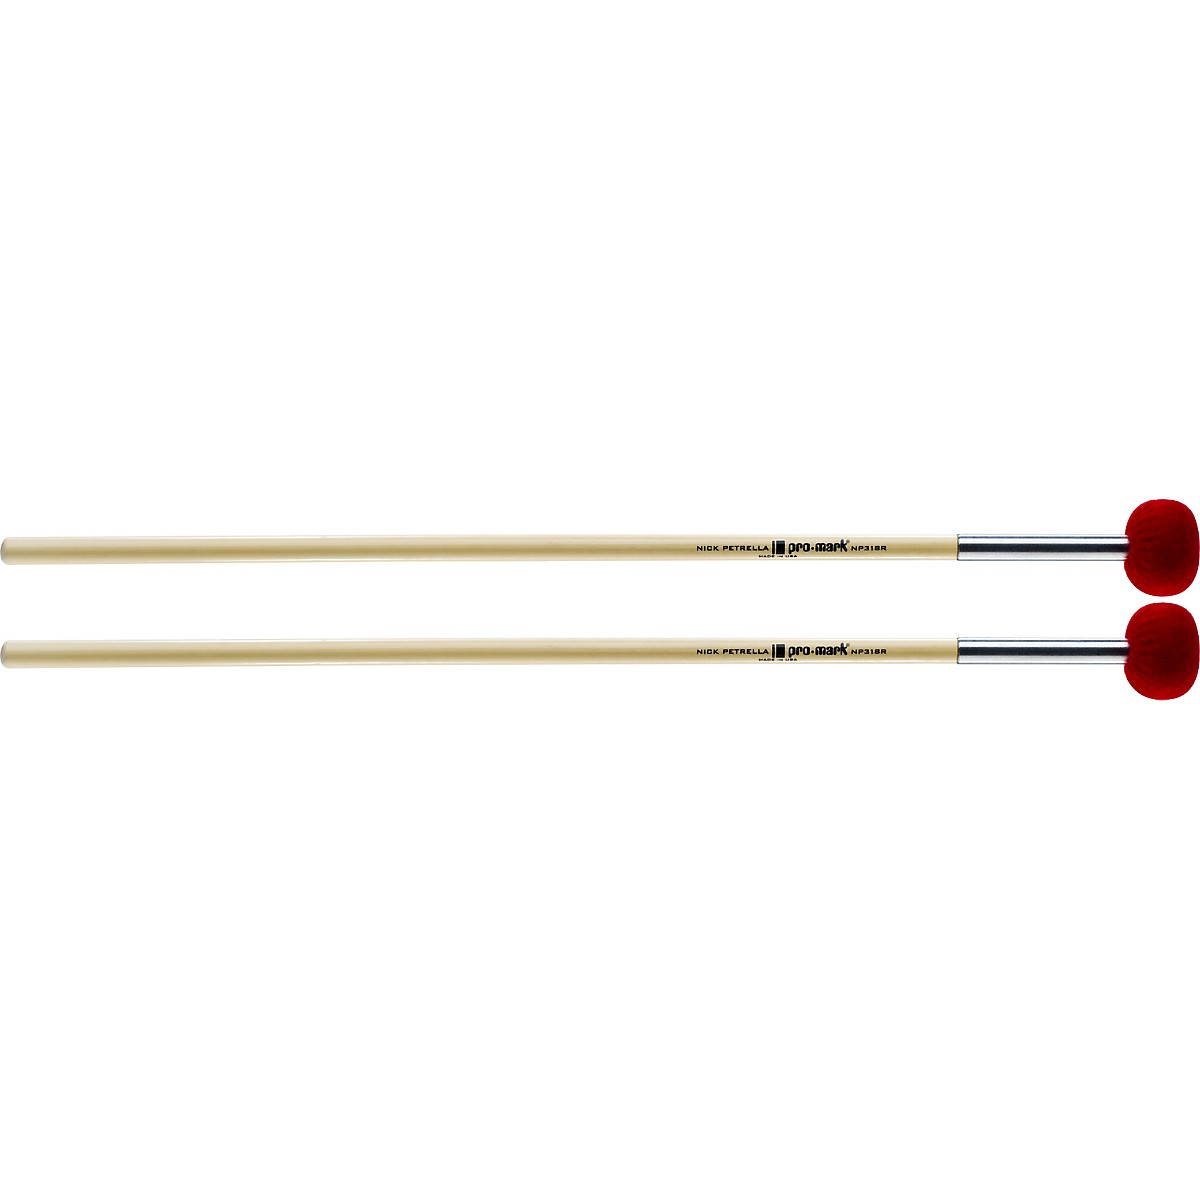 Promark Nick Petrella Multi-Percussion Mallets